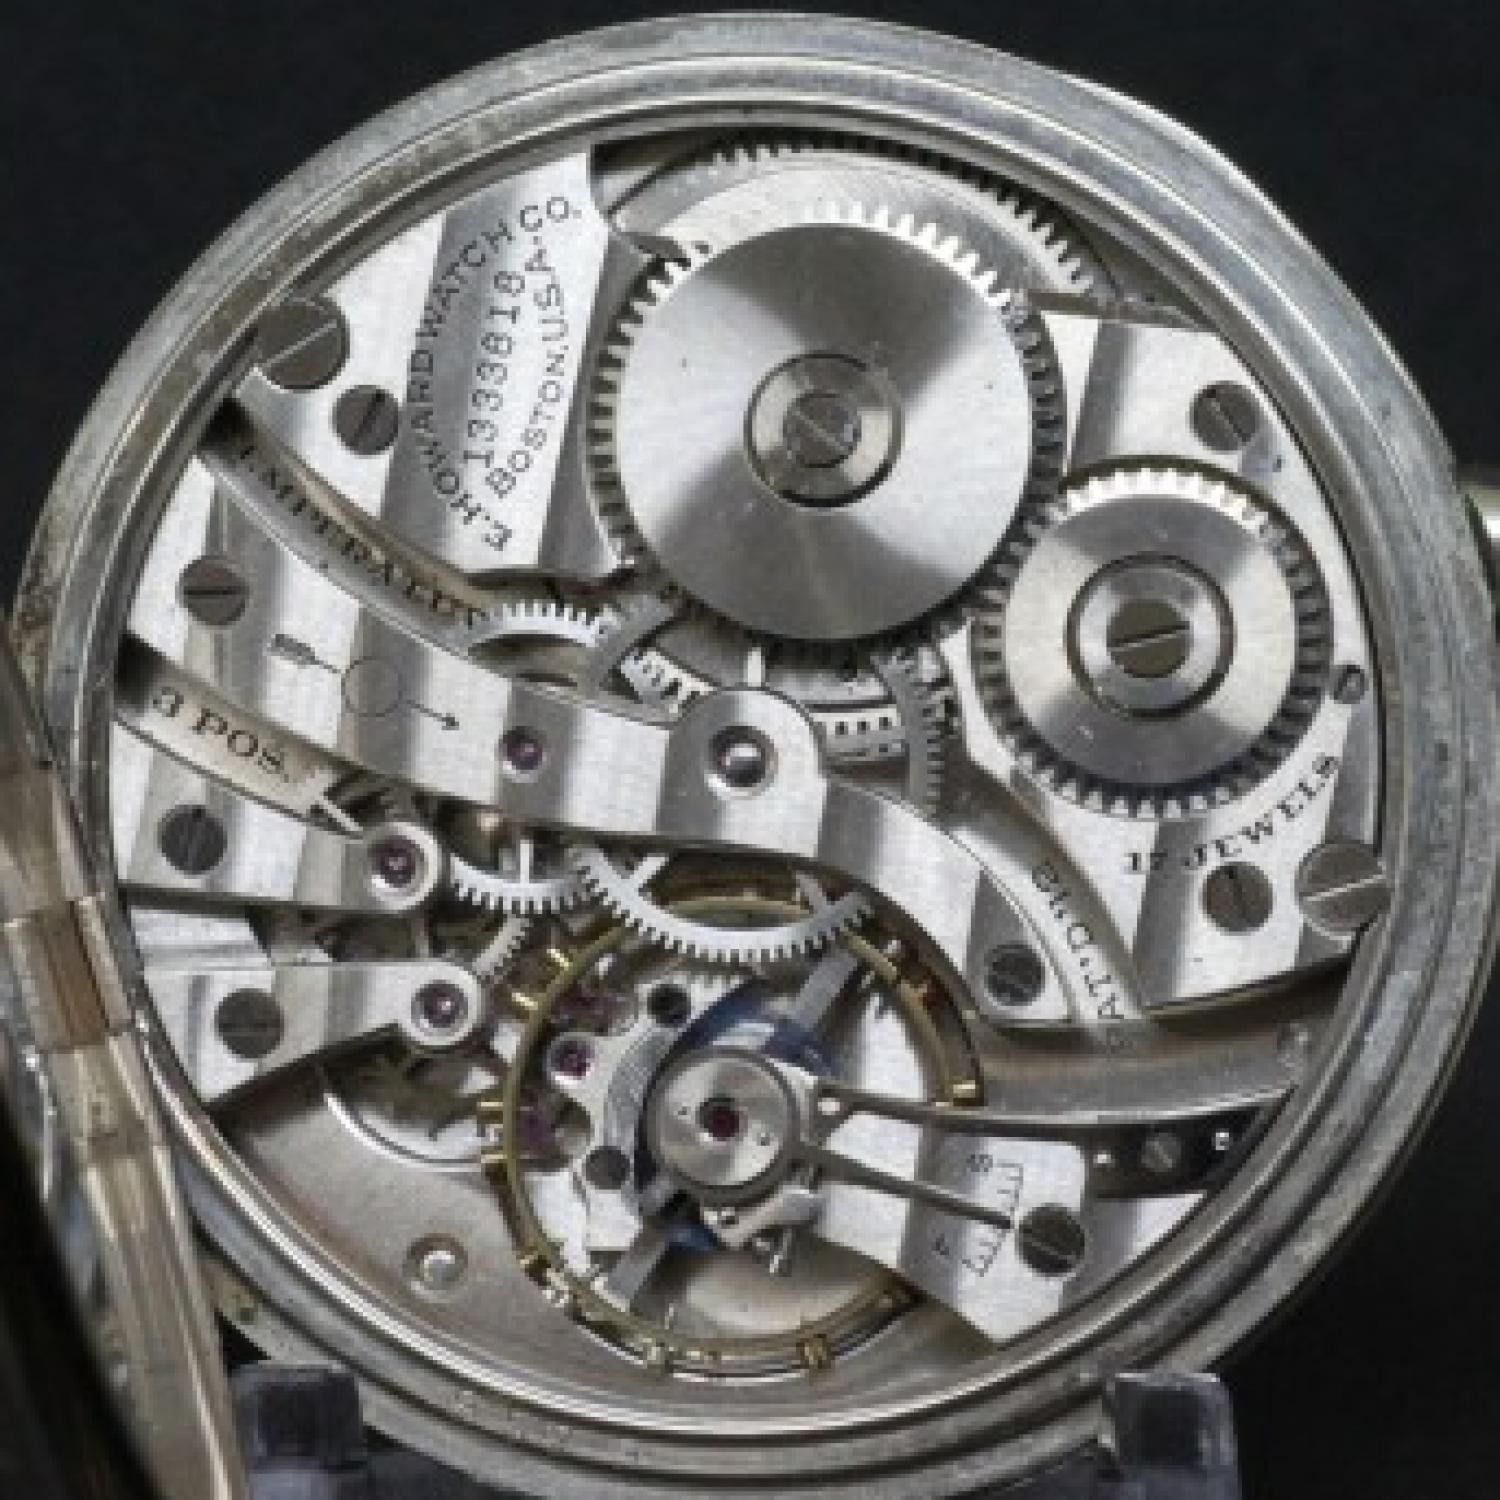 Image of E. Howard Watch Co. (Keystone) Series 7 #1333818 Movement